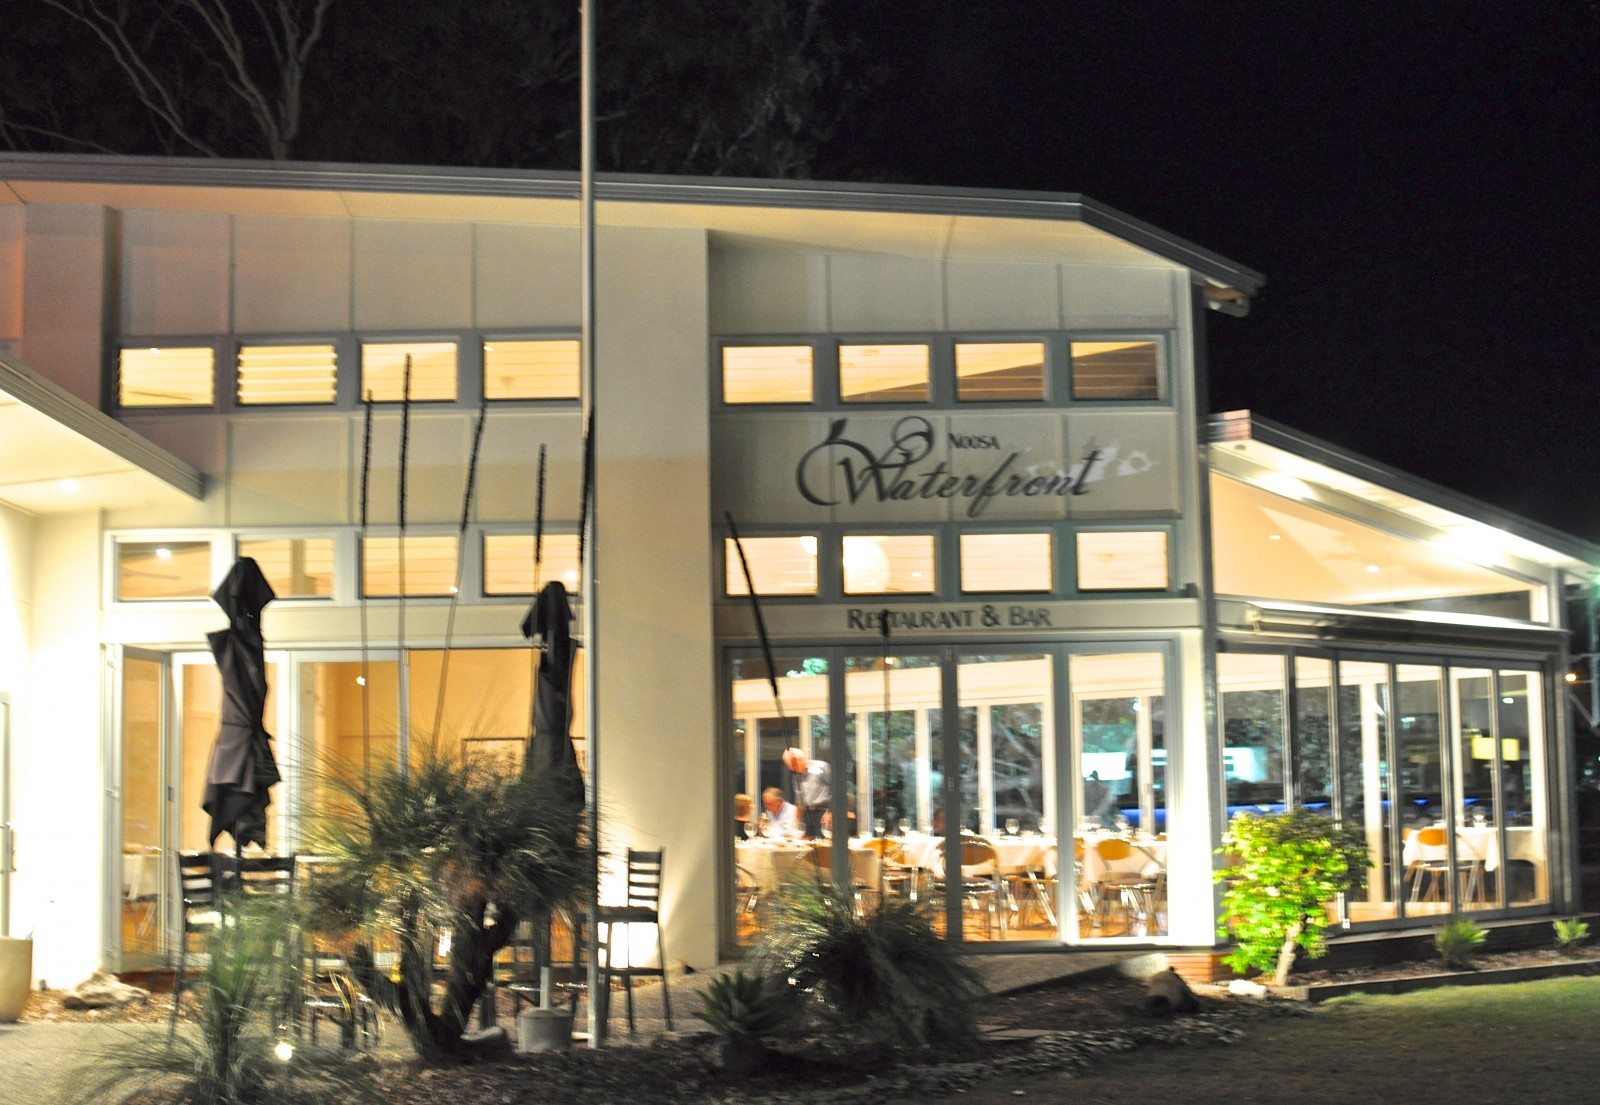 Waterfront restaurant - Noosaville